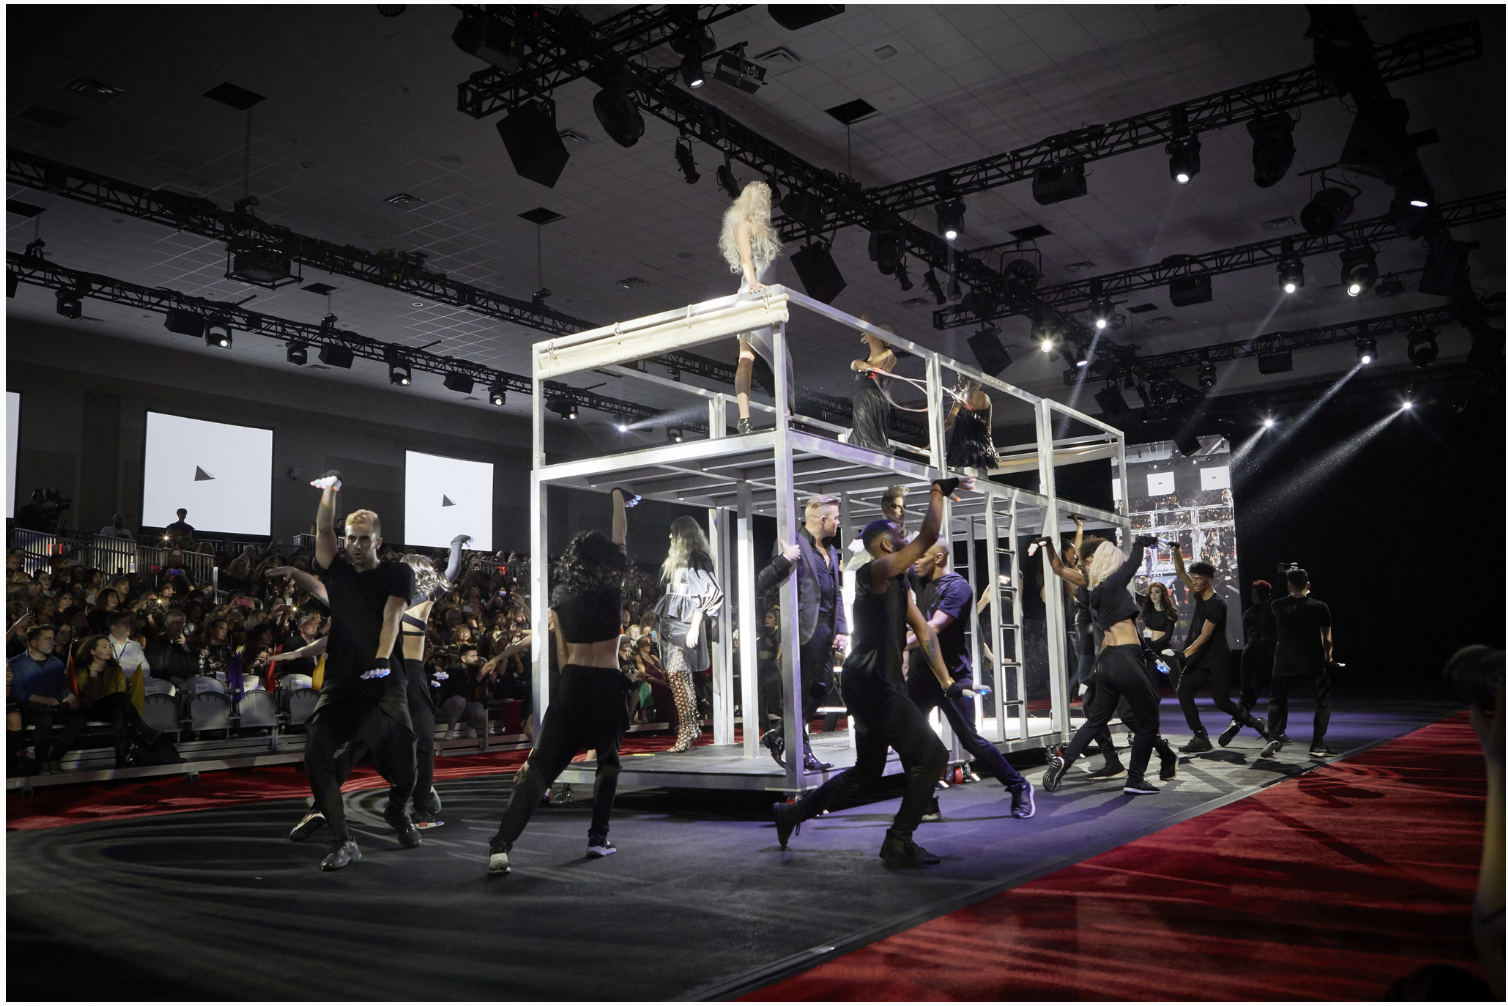 MATRIX - LDJ has been a proud partner of Matrix, a division of L'Oreal for over 12 years. Our partnership has included yearly National Sales Conferences, DESTINATION (a gathering of 3,500-5,000 global hairdressers), SalonCentric touring with Tabitha Coffey, and National and Regional market events.VIEW CASE STUDY